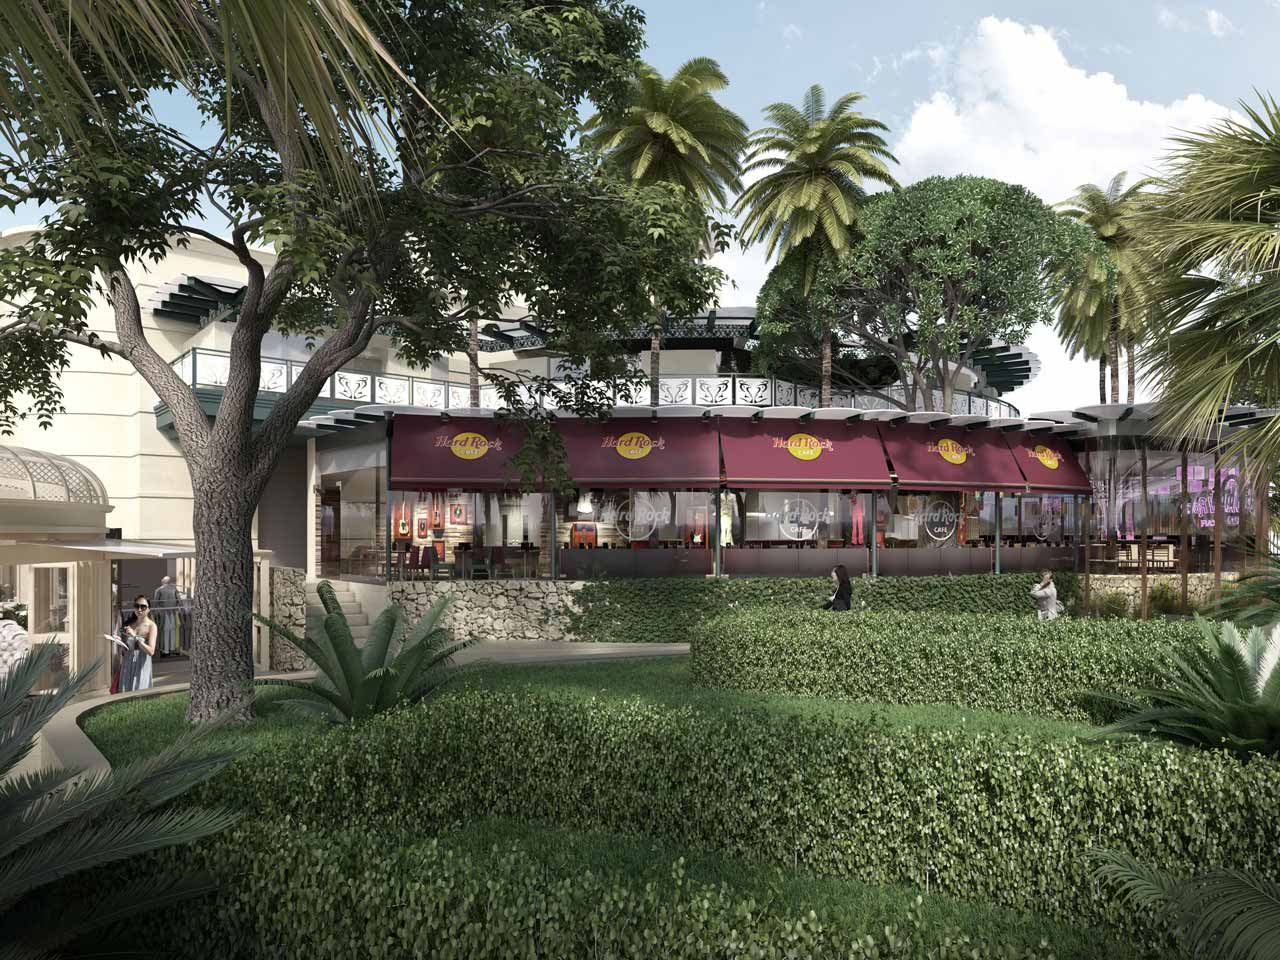 Hard Rock Café exterior CGI showing how the café will blend with existing architecture, gardens and walkways